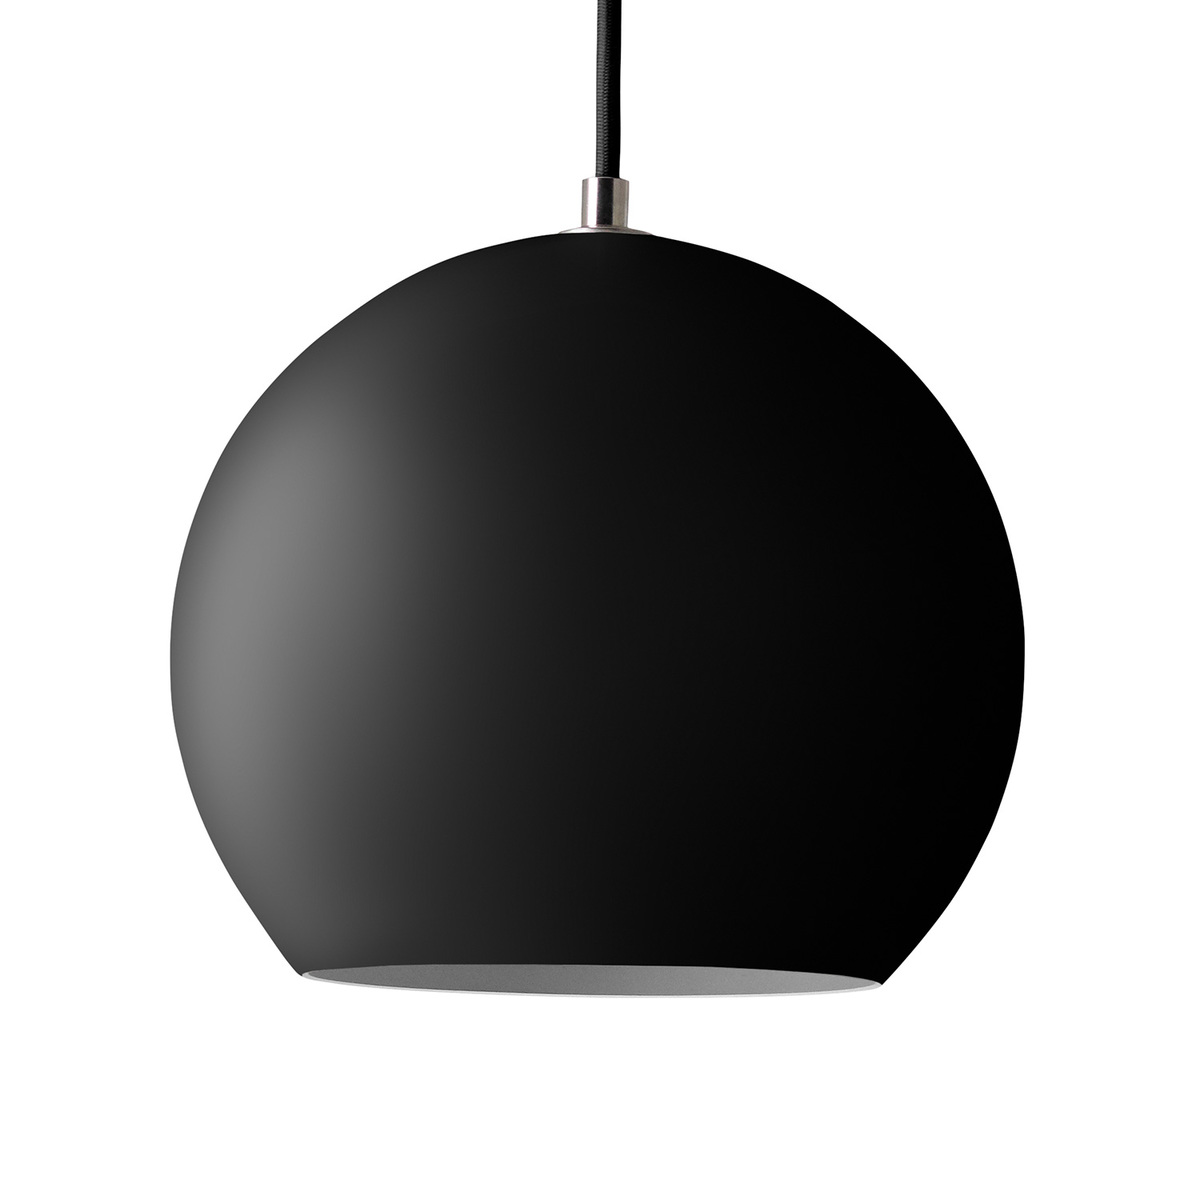 &Tradition Topan VP6 pendant light, matt black from &Tradition